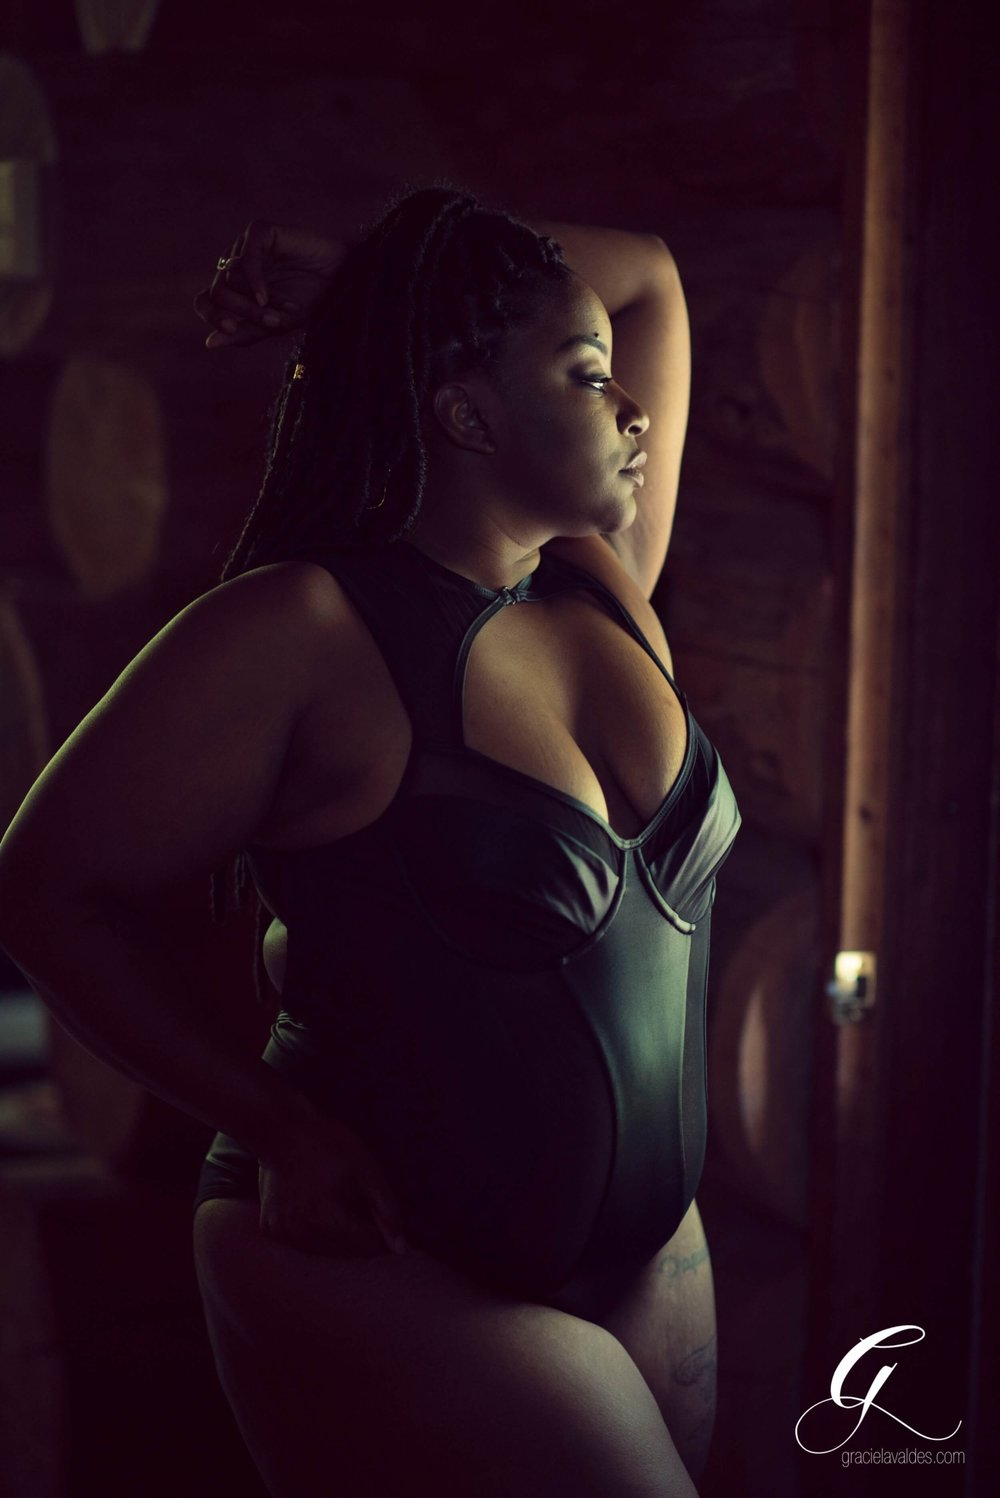 Plus Size Woman of Color Boudoir by Graciela Valdes -4.jpg